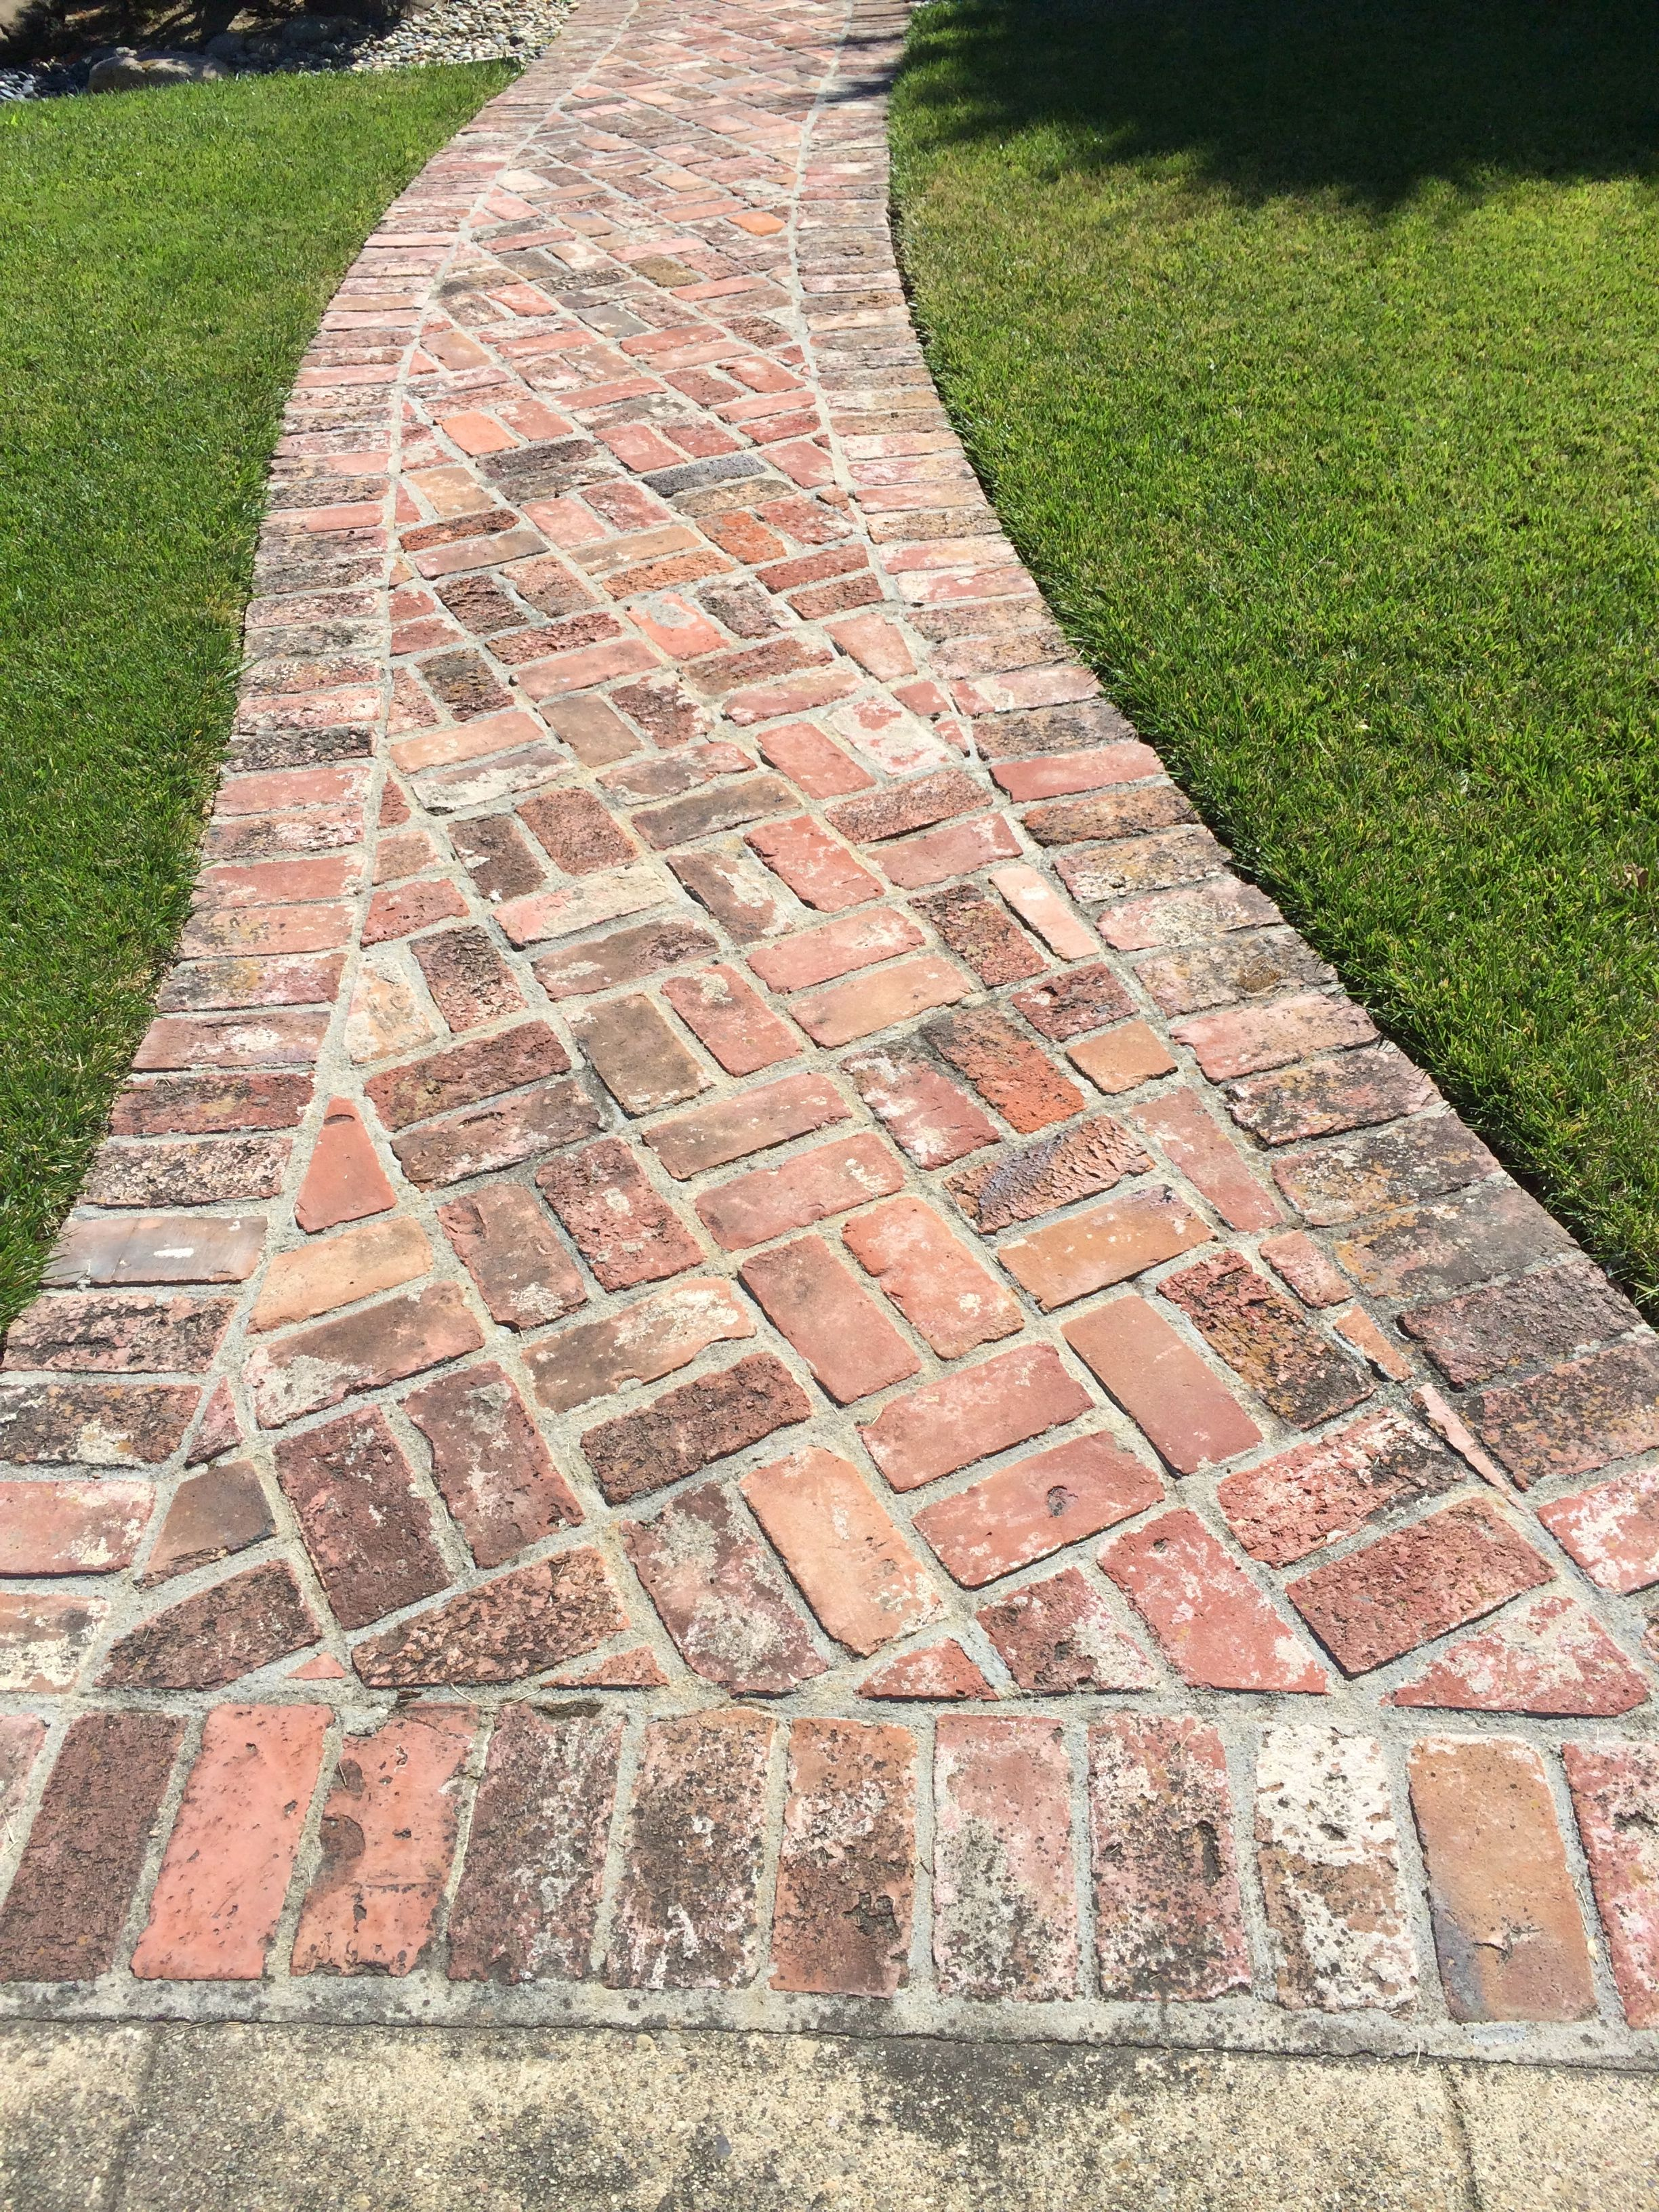 Do It Yourself Home Design: Herringbone Brick Pathway With Border On Concrete